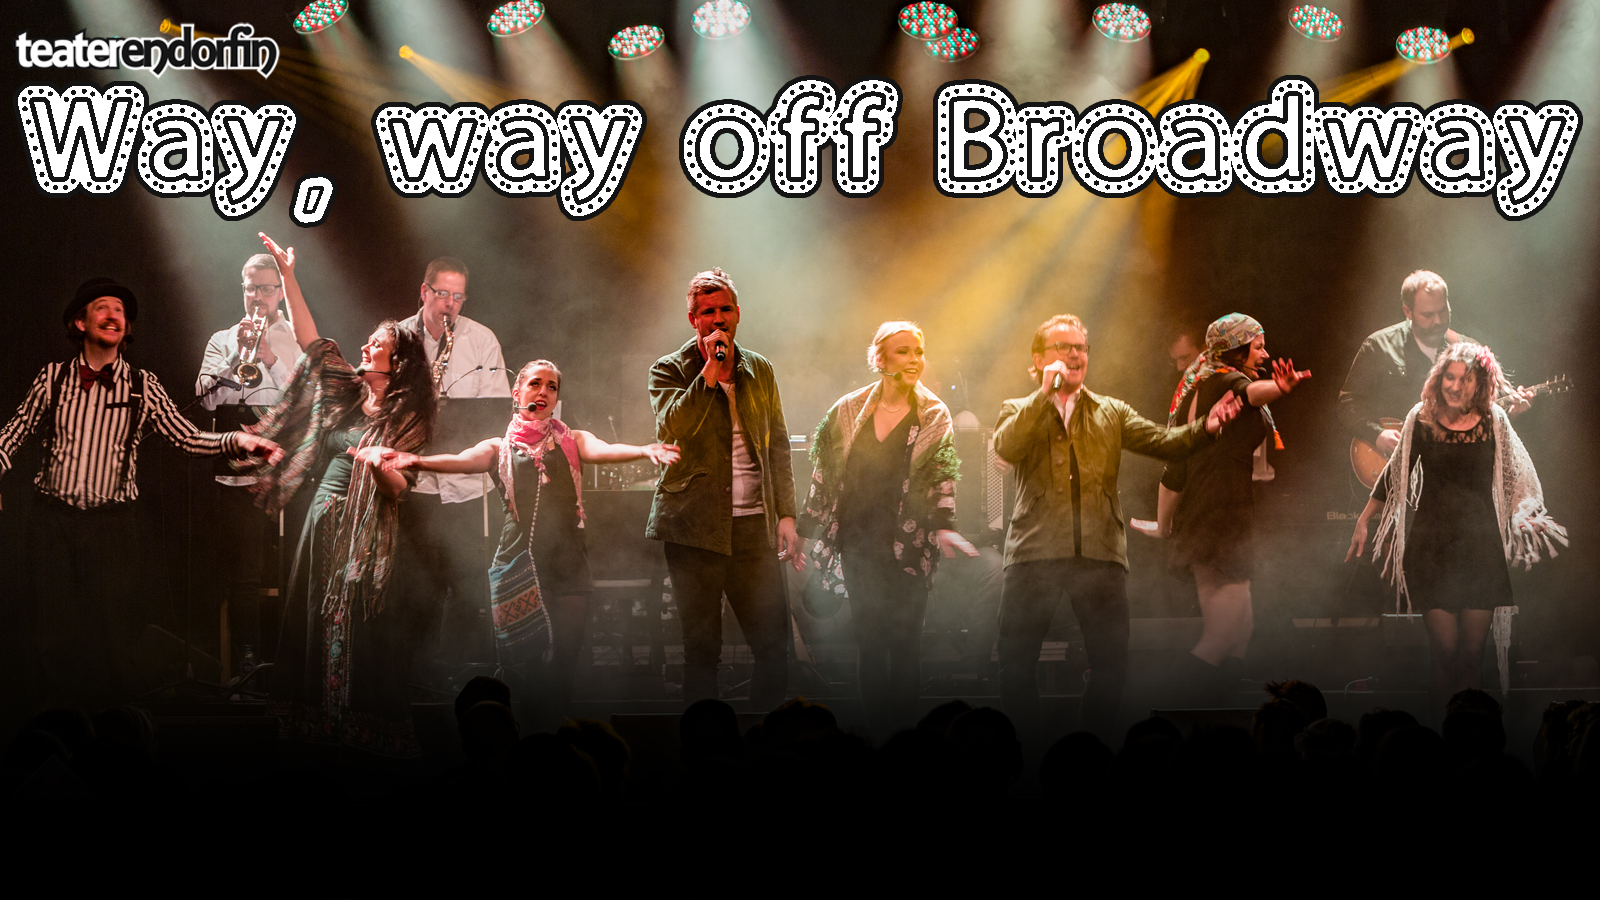 Way, way off Broadway 2